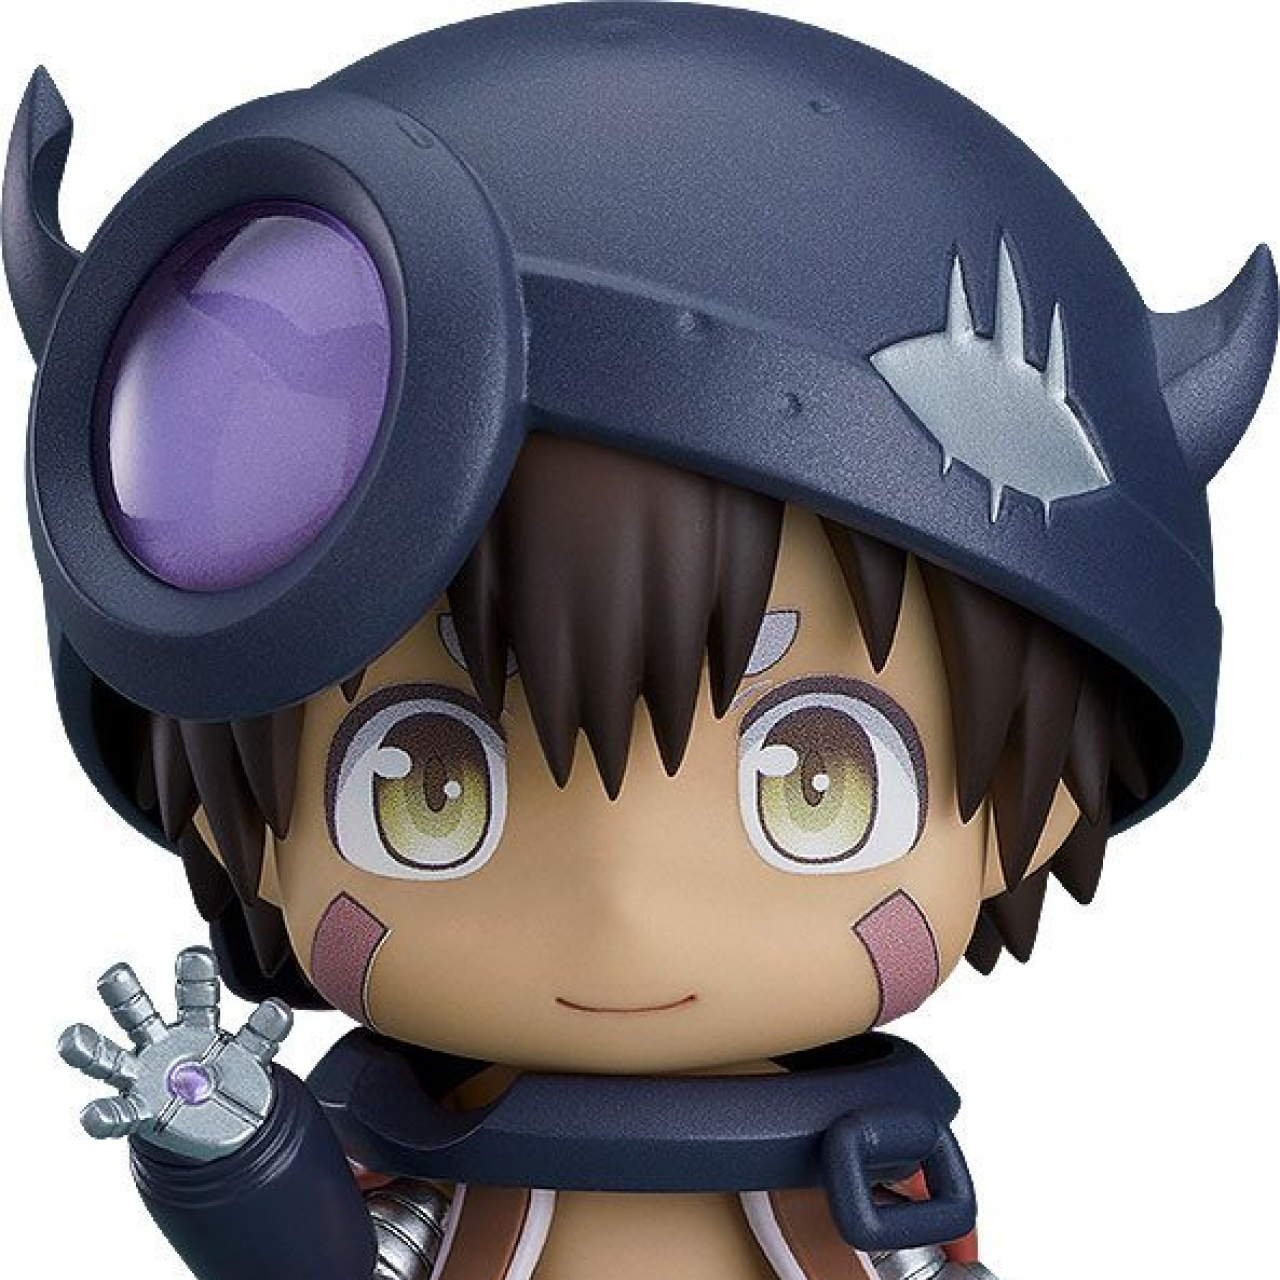 Made in Abyss Nendoroid Action Figure Reg 10 cm